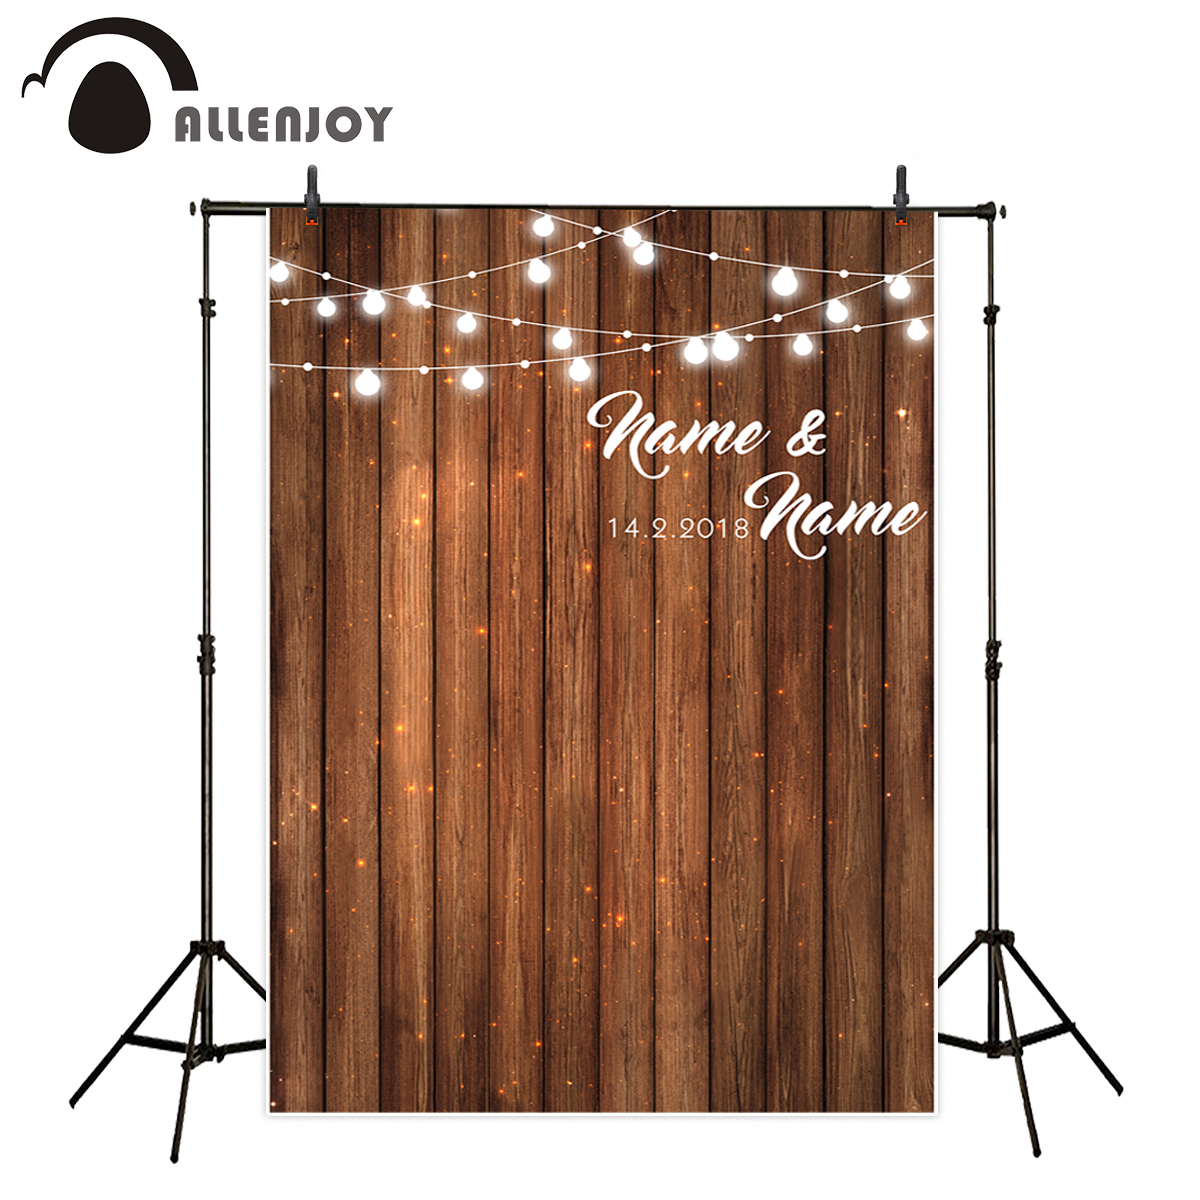 Allenjoy wedding backgrounds for photography studio wood board party customize original design backdrop professional photocall aluminum co2 laser head set dia 20mm znse focal focus lens fl 50 8mm integrative mount dia 20mm si reflective mirror